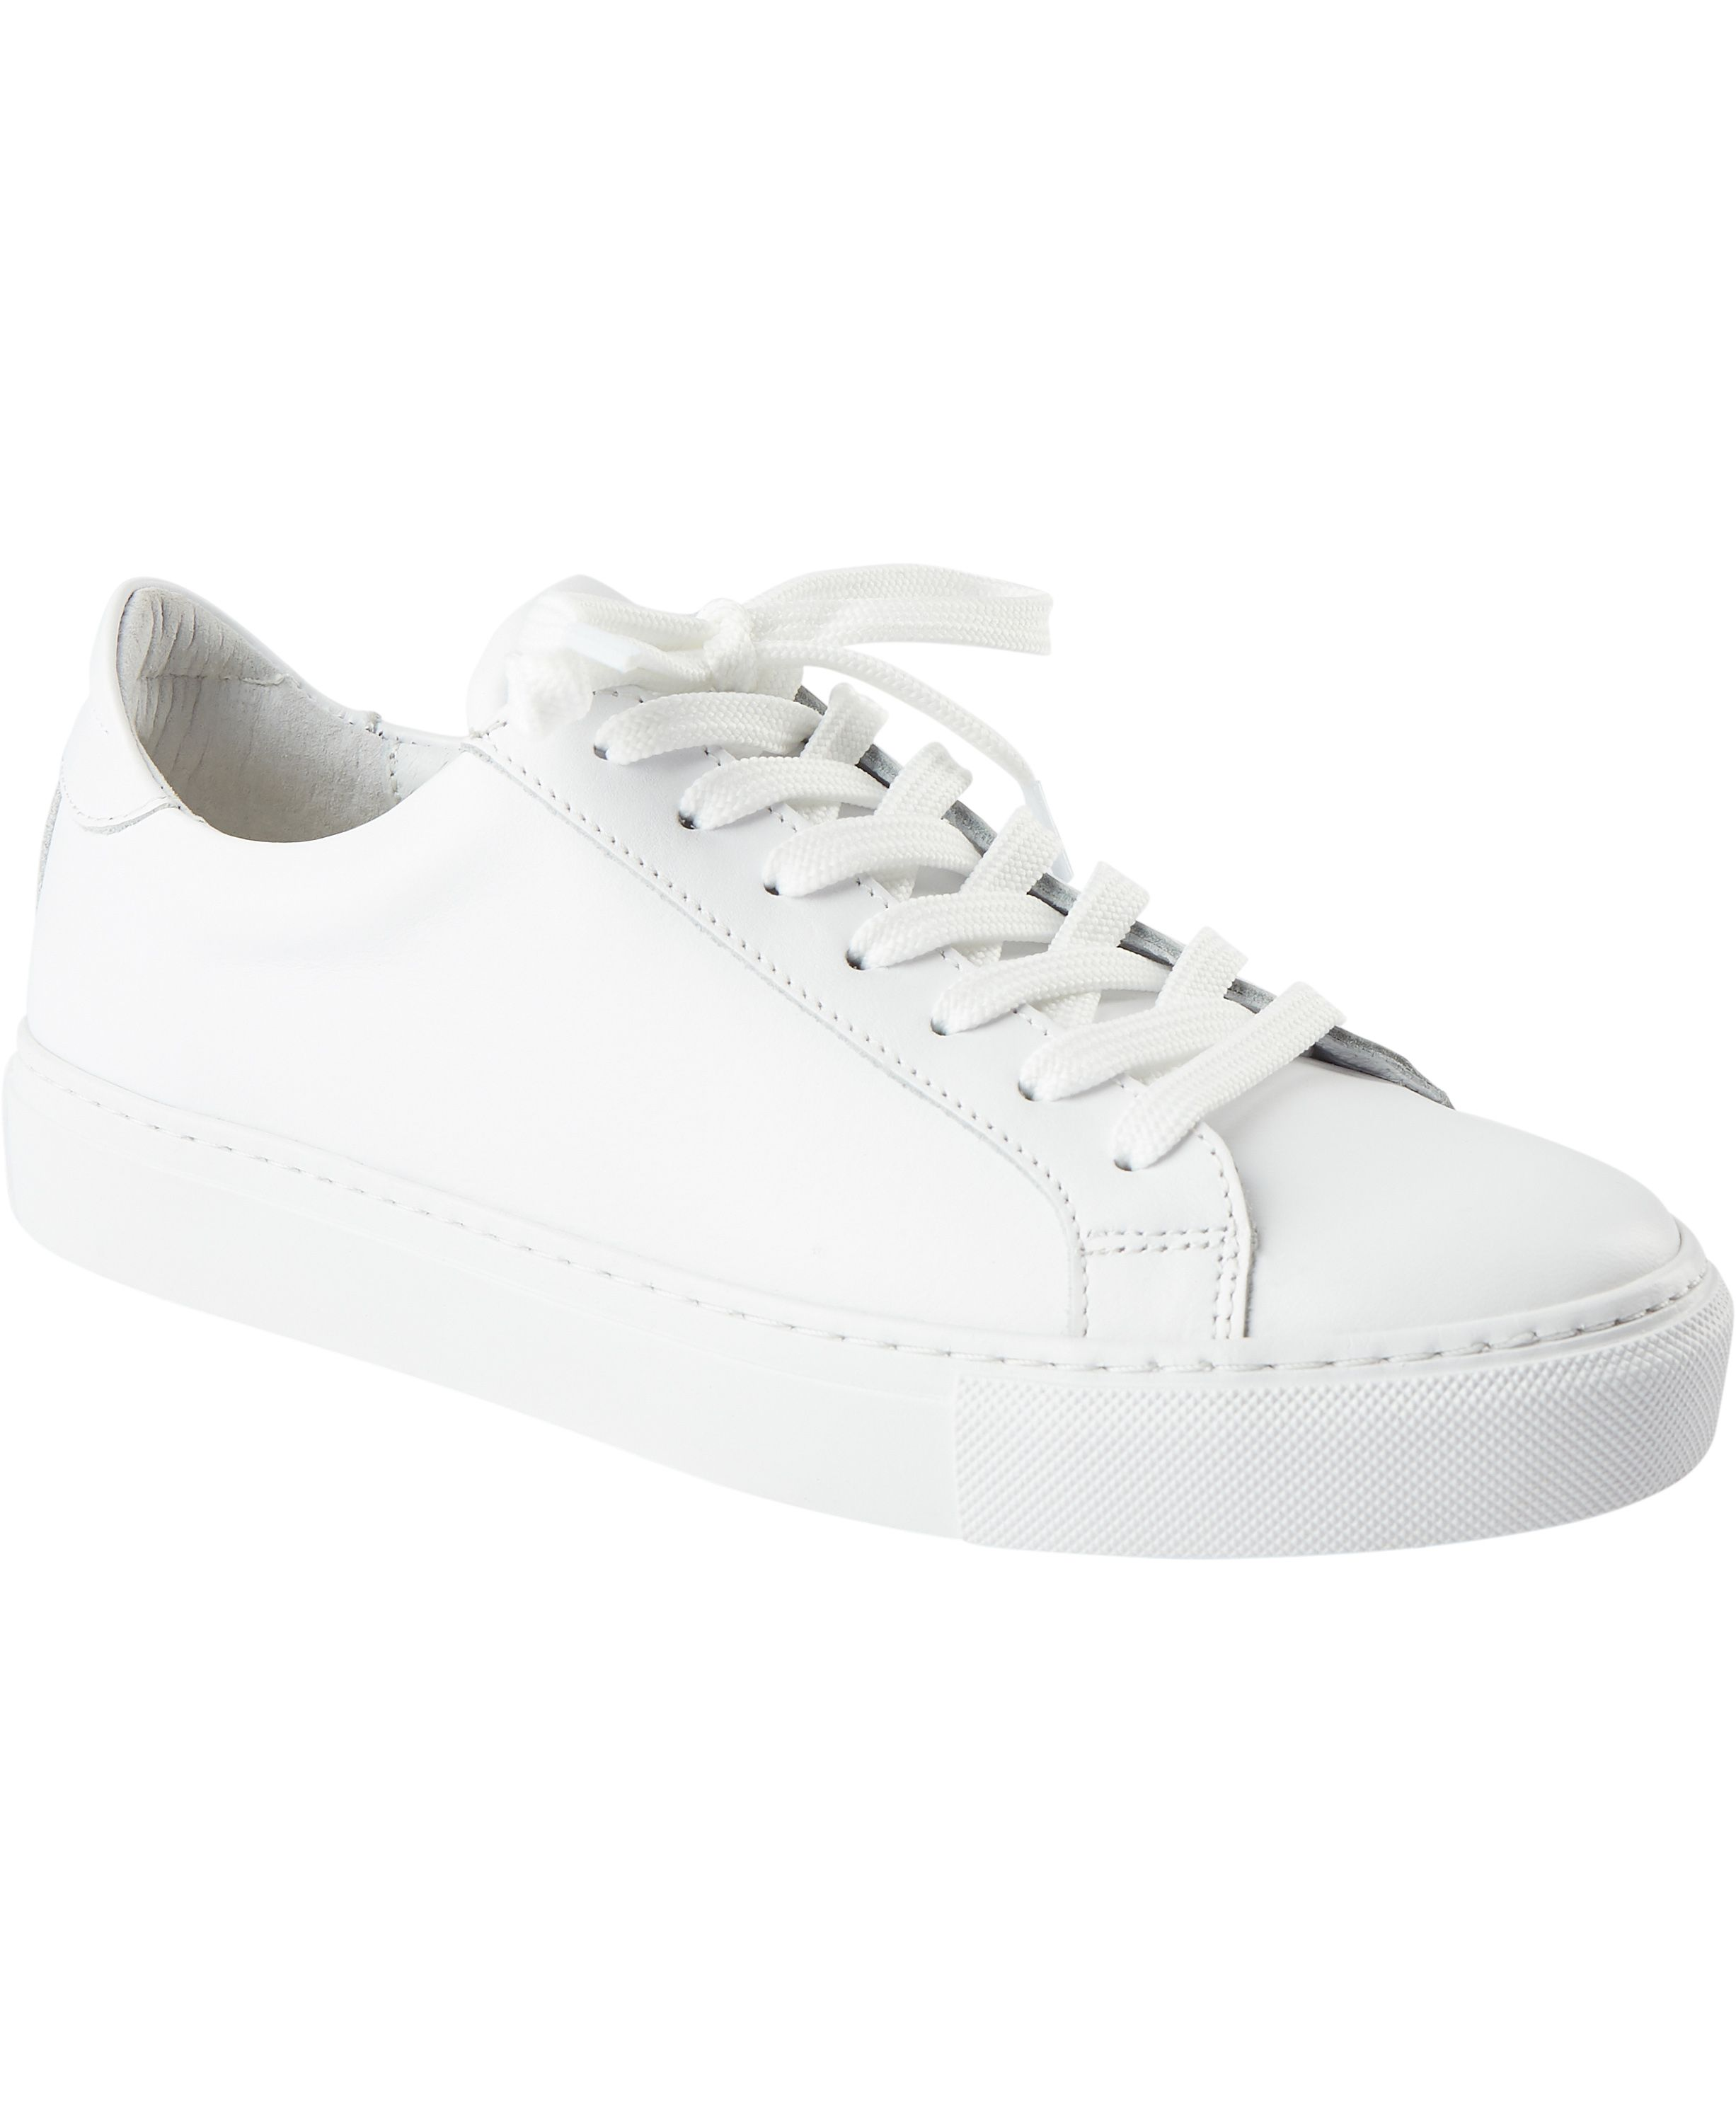 hot sale online 2961f b360e Garment Project Type white leather sneakers